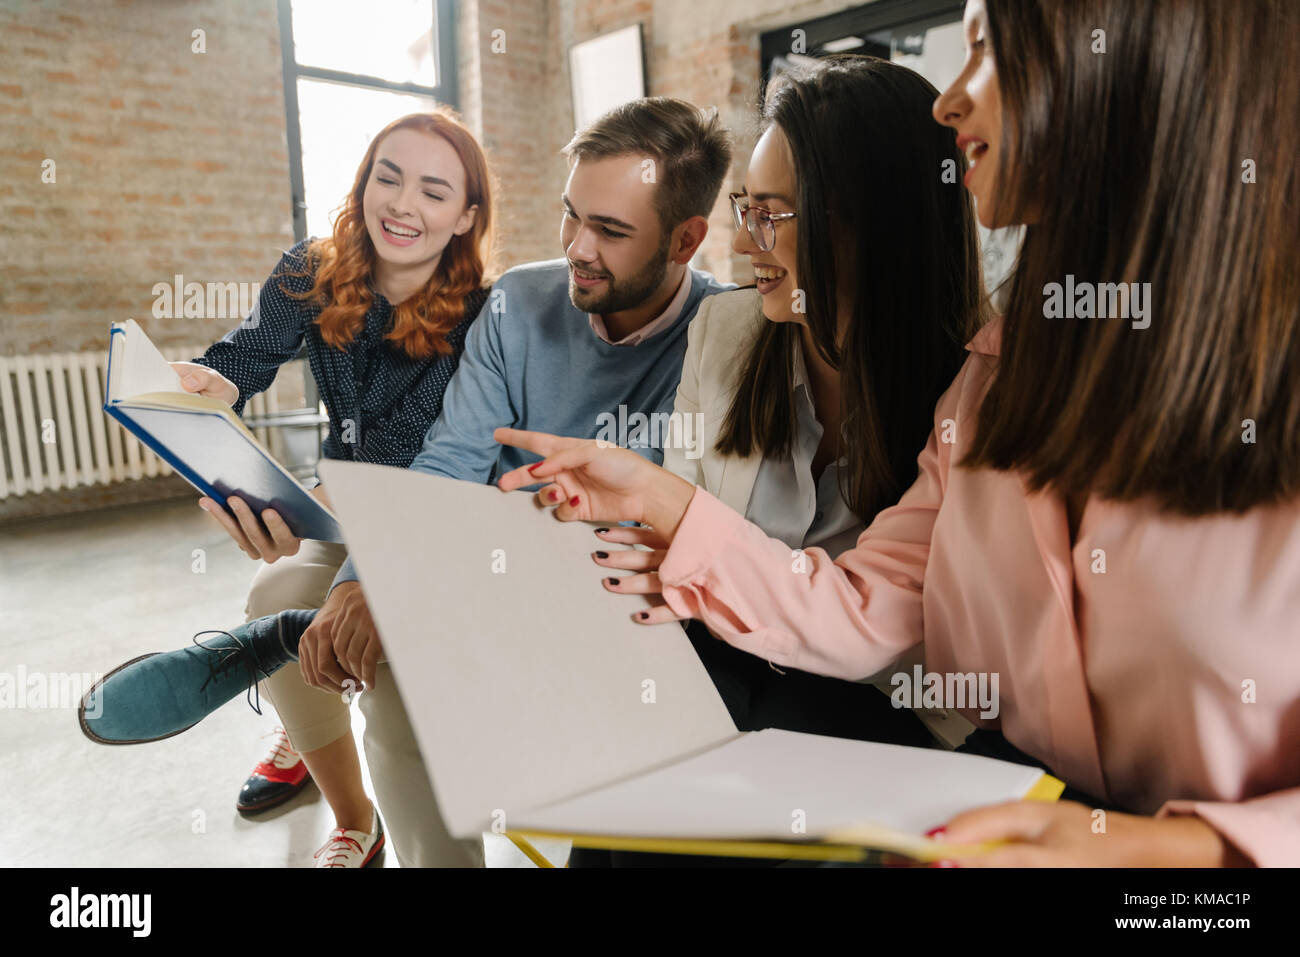 Interns laughing at their notes - Stock Image